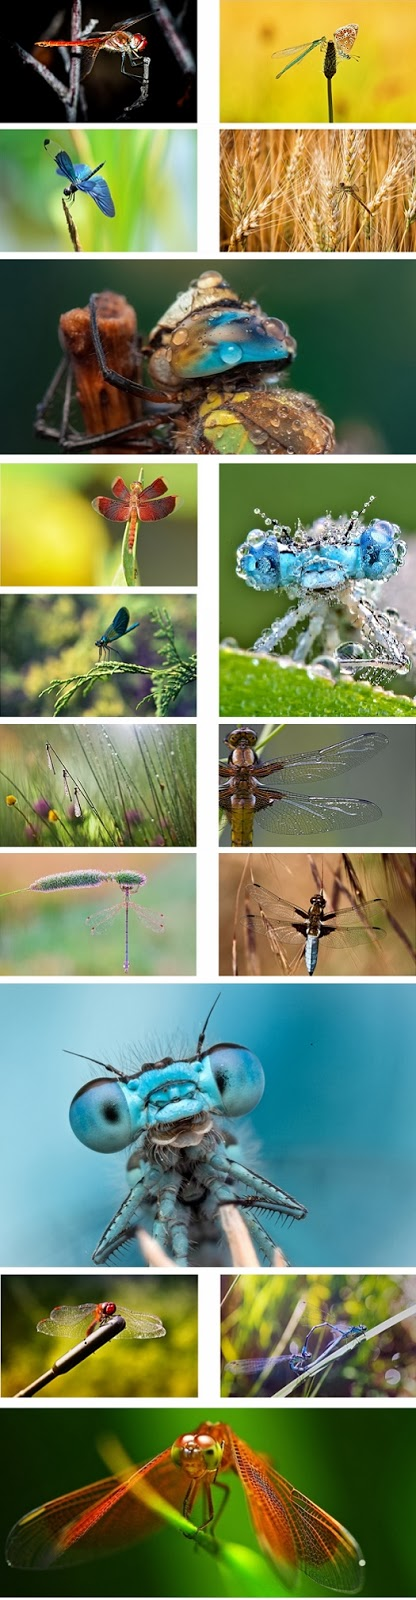 Dragonfly Theme For Windows 7 And 8 8.1